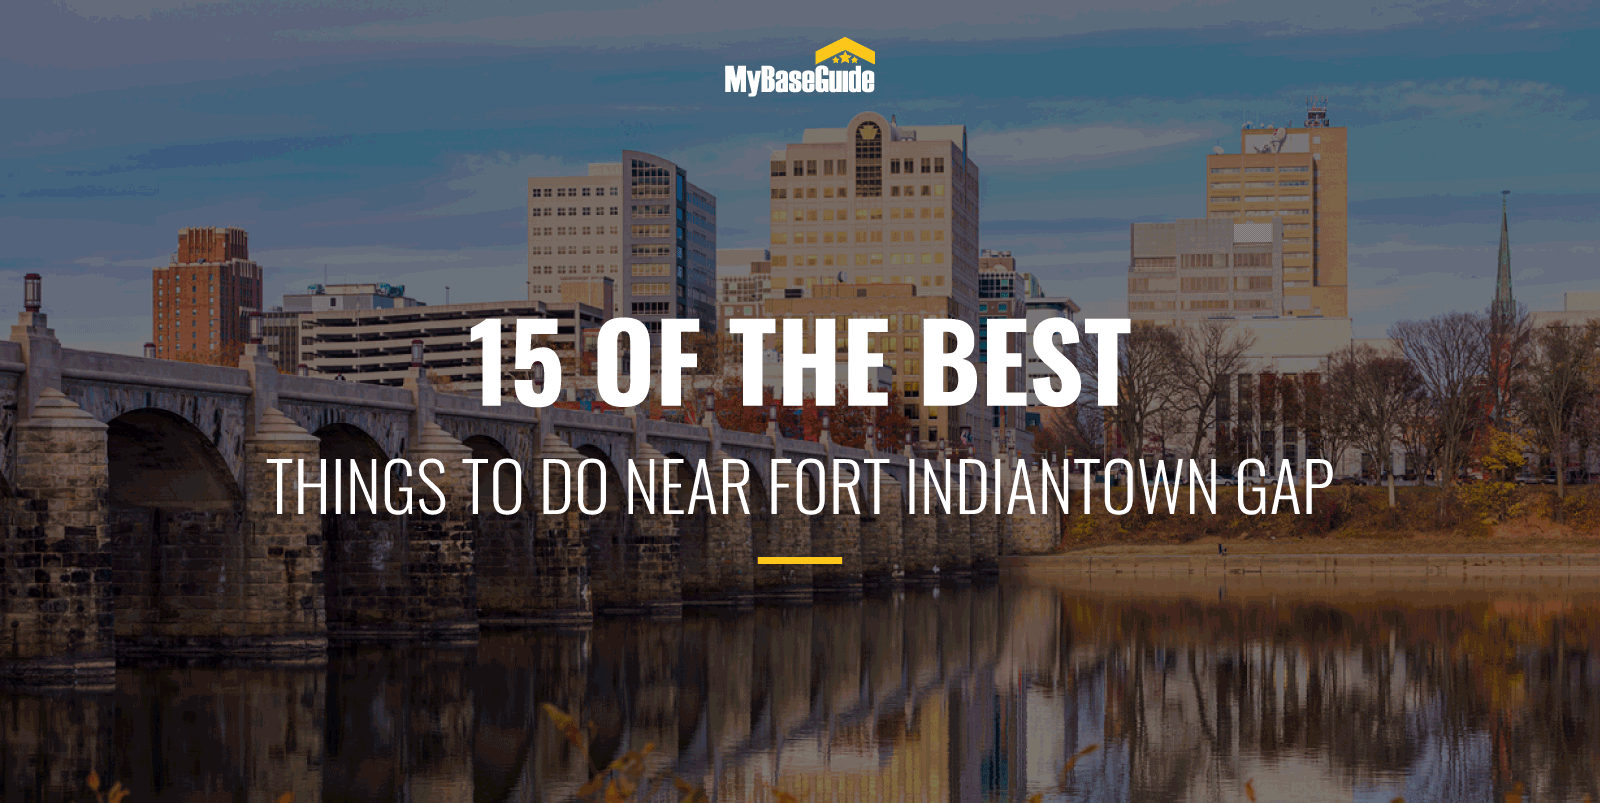 15 Of the Best Things to Do Near Fort Indiantown Gap